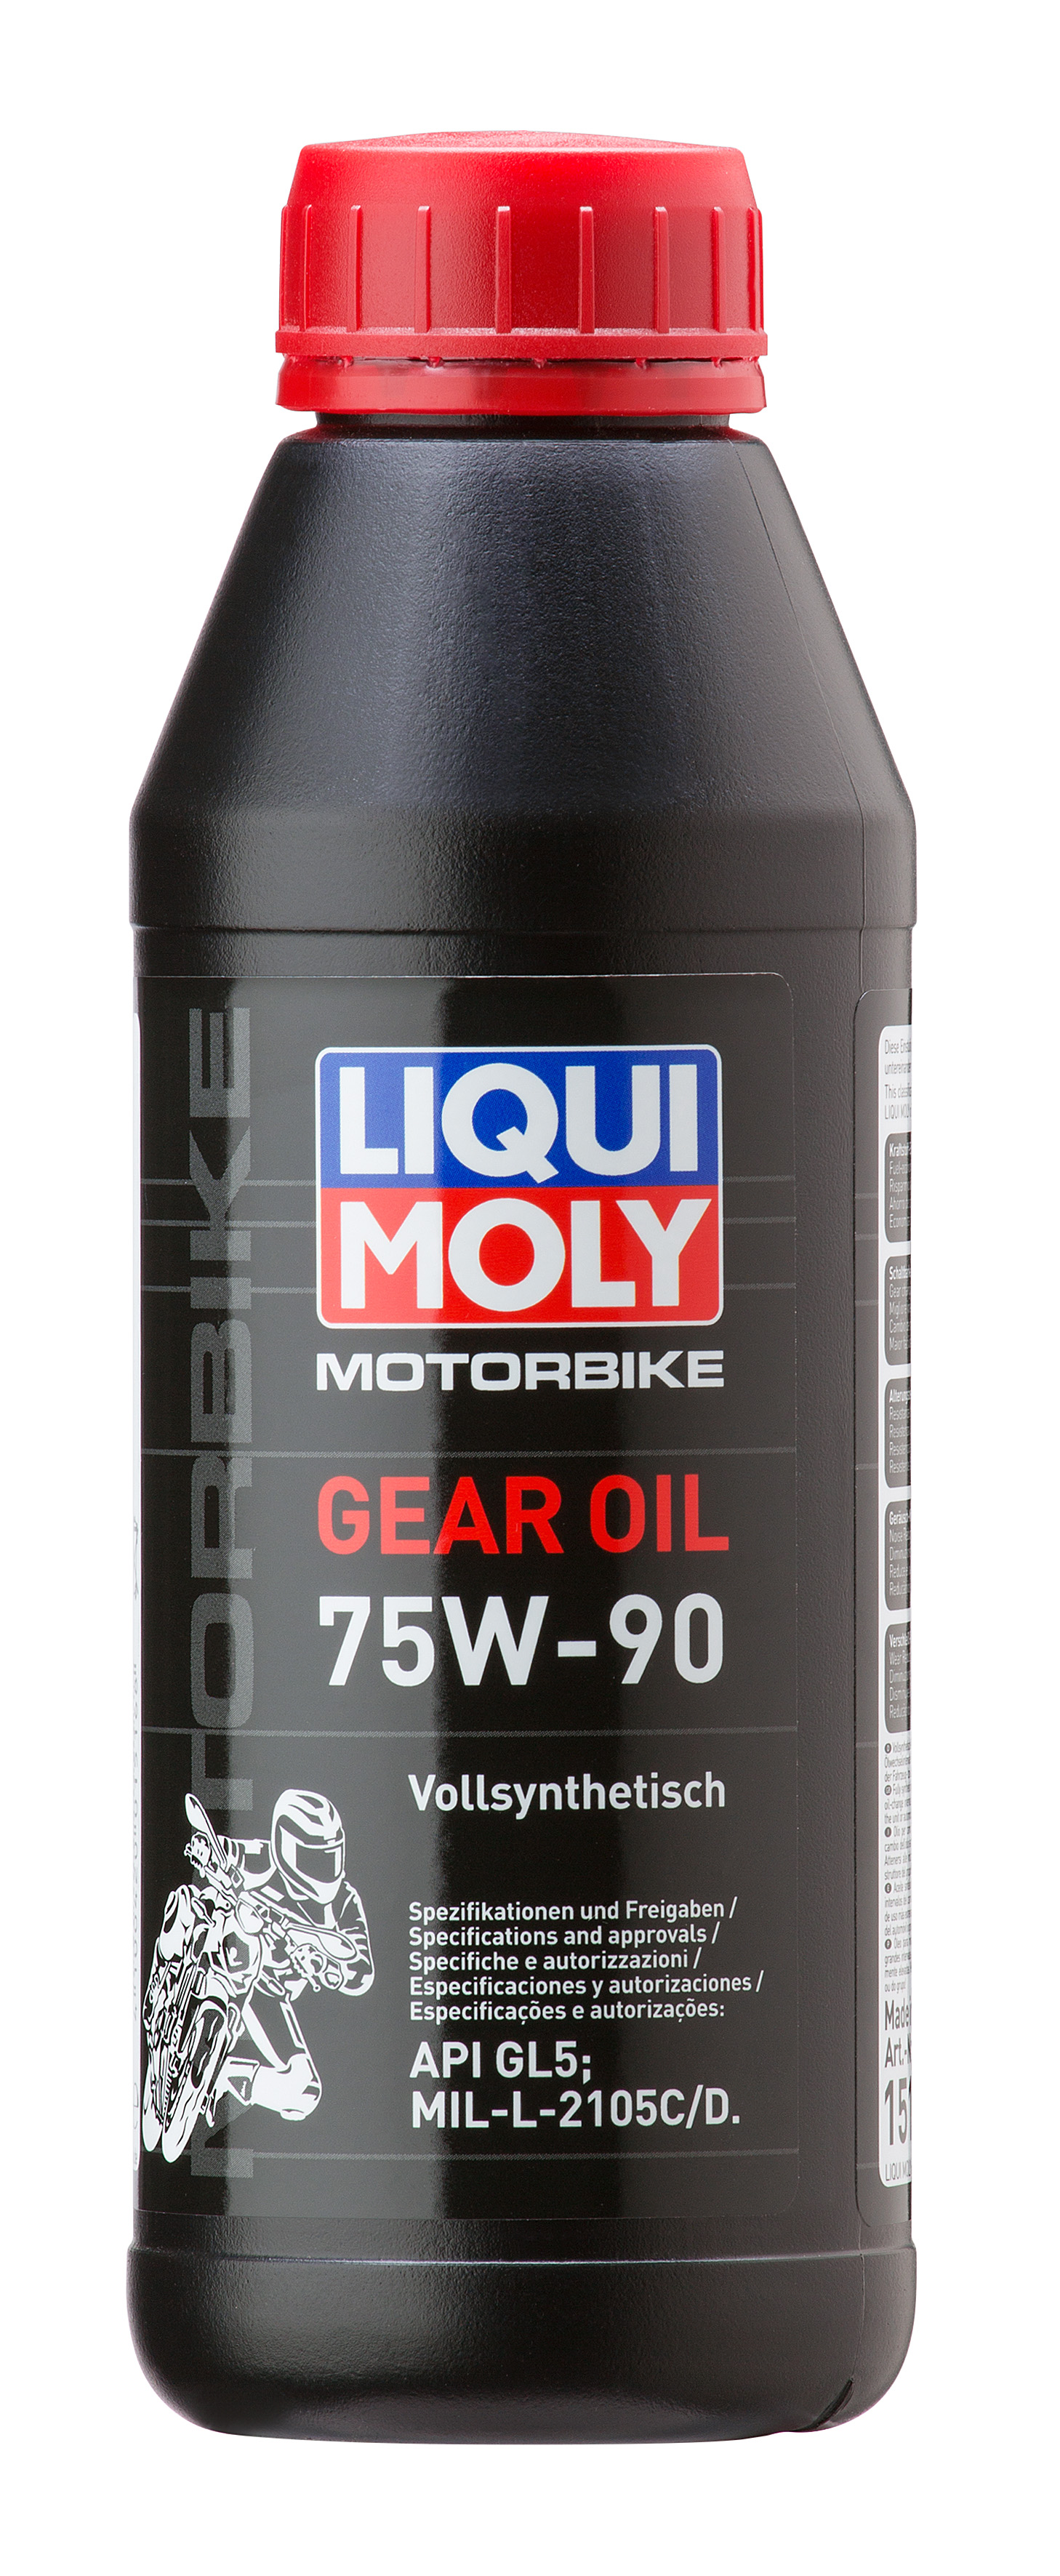 liqui moly madrid aceites aditivos motor y maquinaria para taller automocion. Black Bedroom Furniture Sets. Home Design Ideas